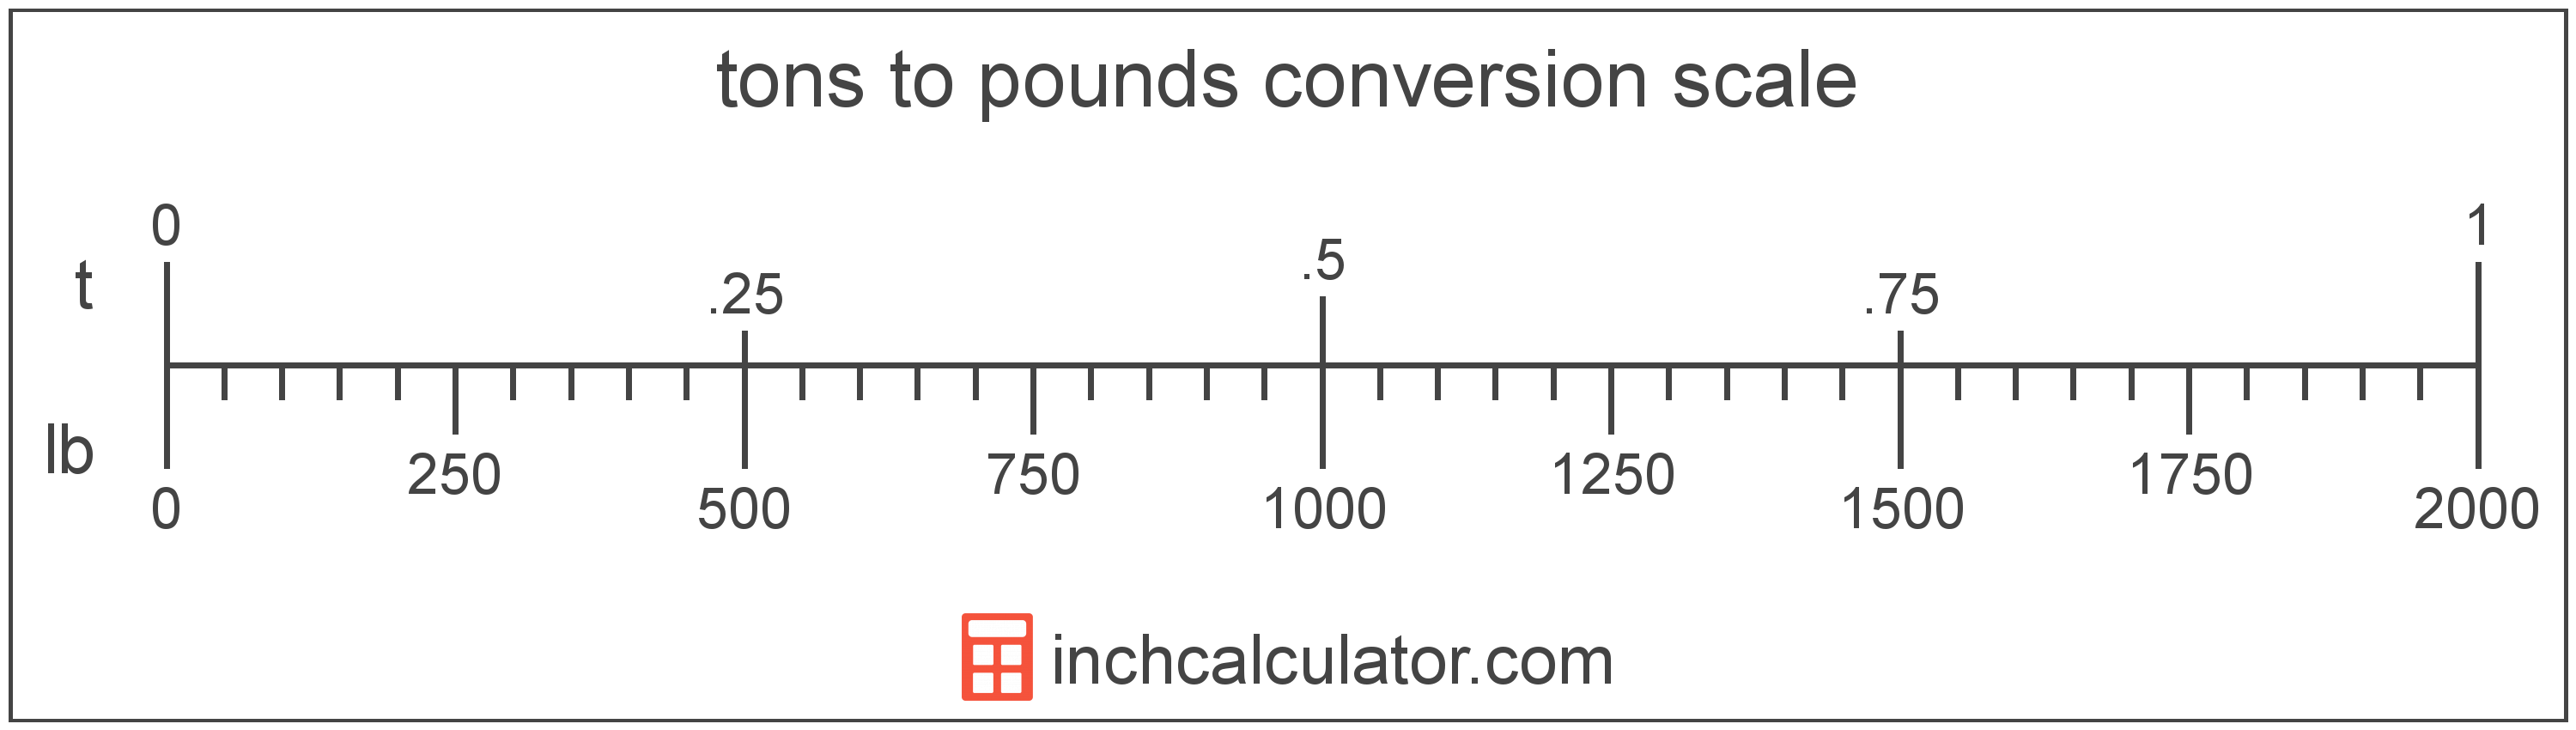 conversion scale showing tons and equivalent pounds weight values